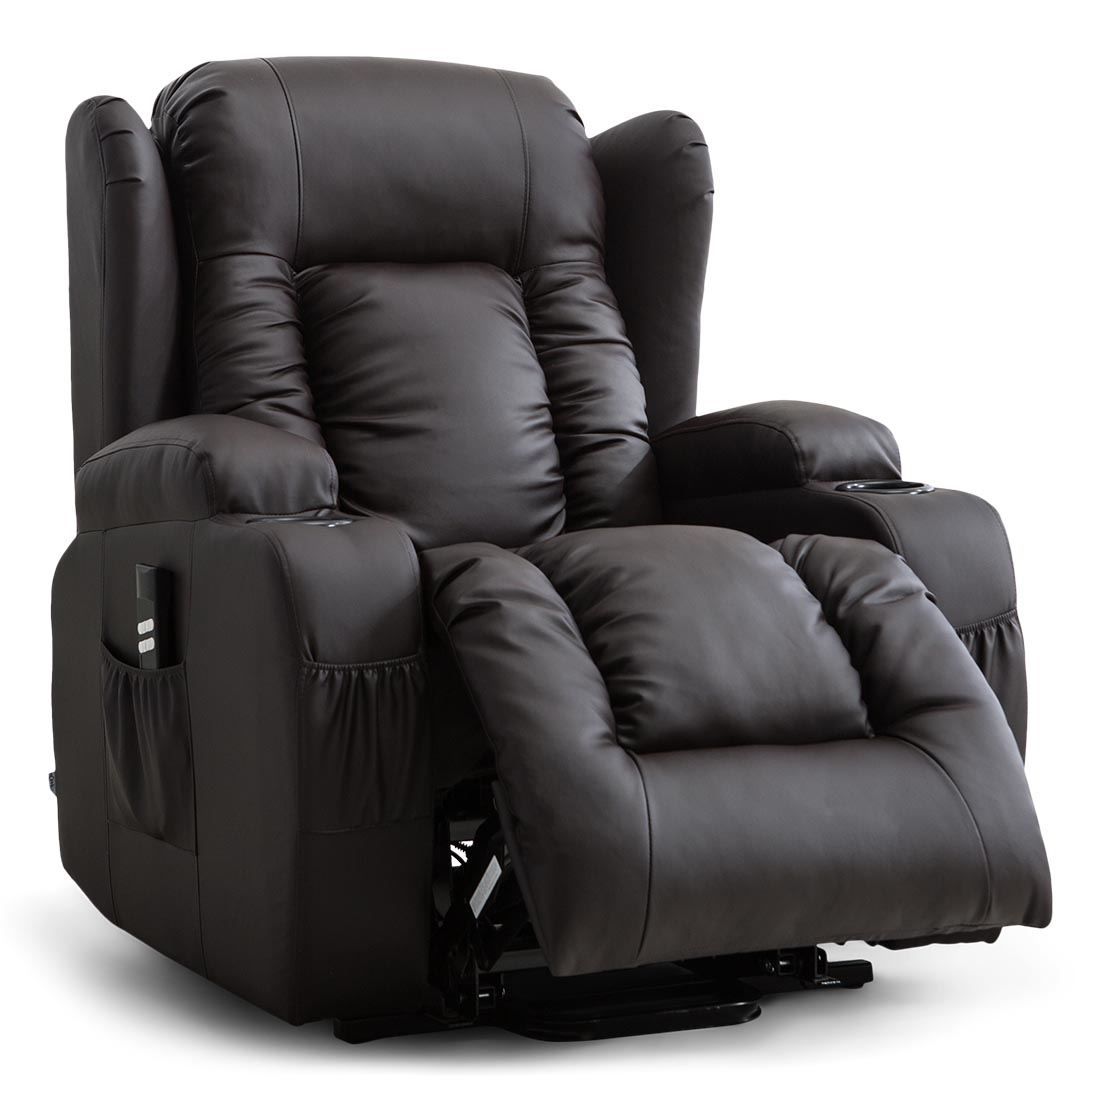 CAESAR-DUAL-MOTOR-RISER-RECLINER-LEATHER-MOBILITY-ARMCHAIR-MASSAGE-HEATED-CHAIR thumbnail 11